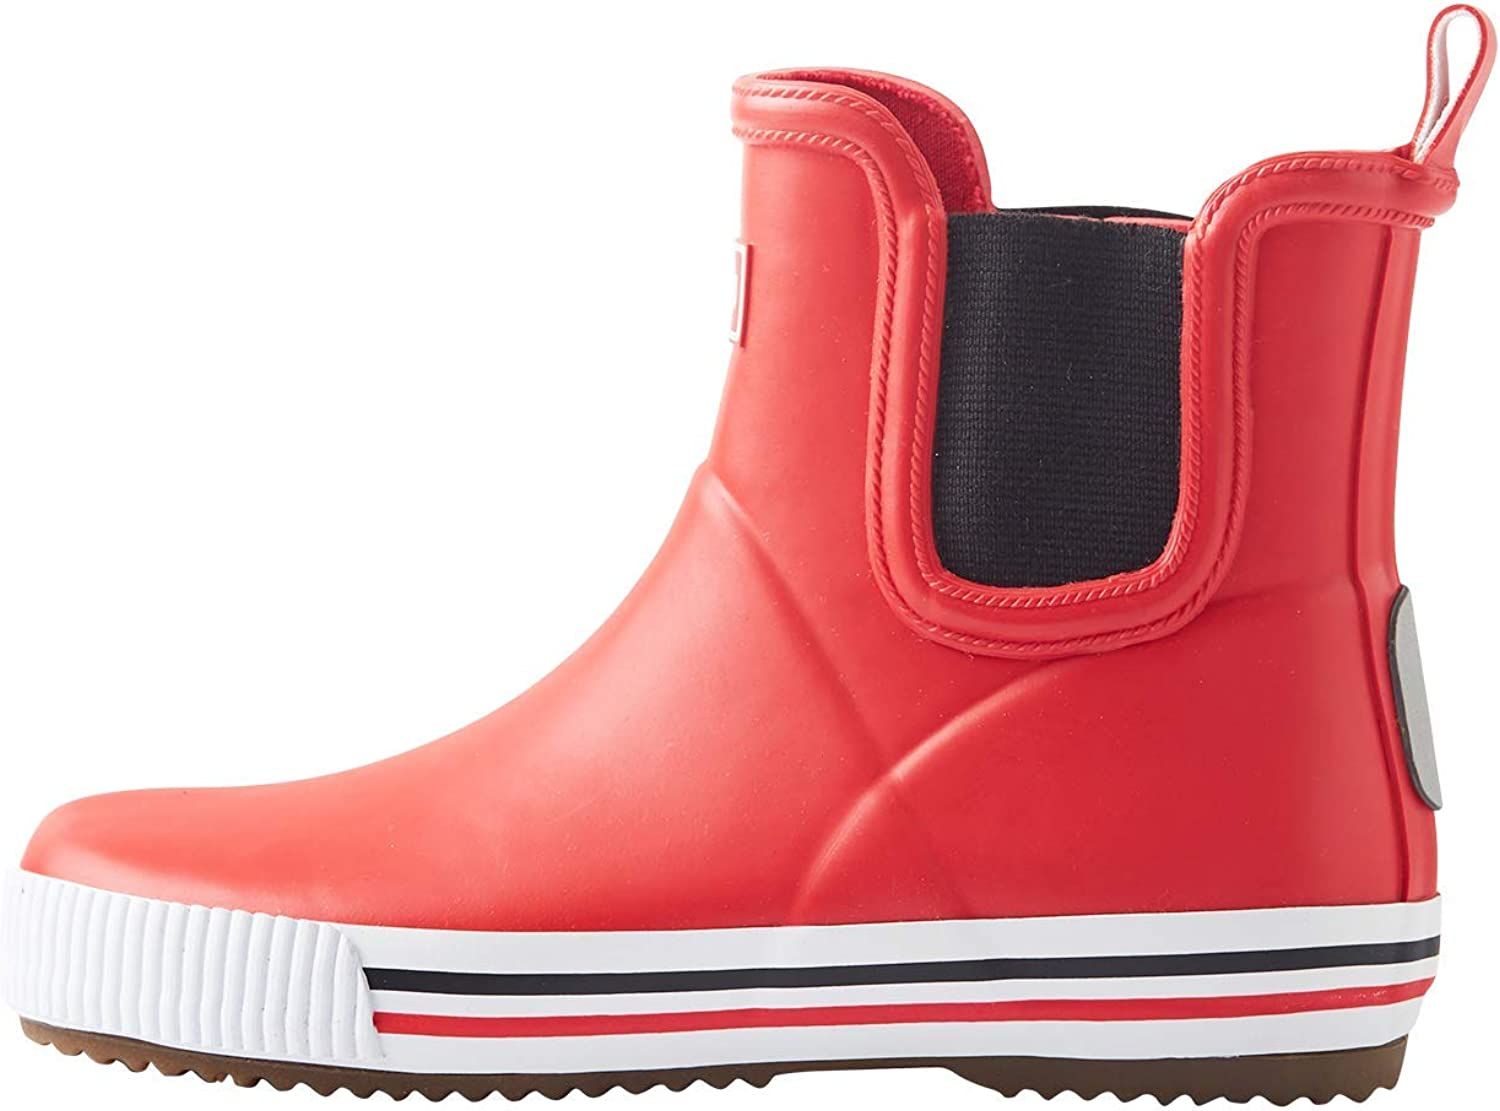 Reima Ankles Bombing new work Waterproof Low Cut Weekly update Rain Outdoor Boot f Rubber Boots